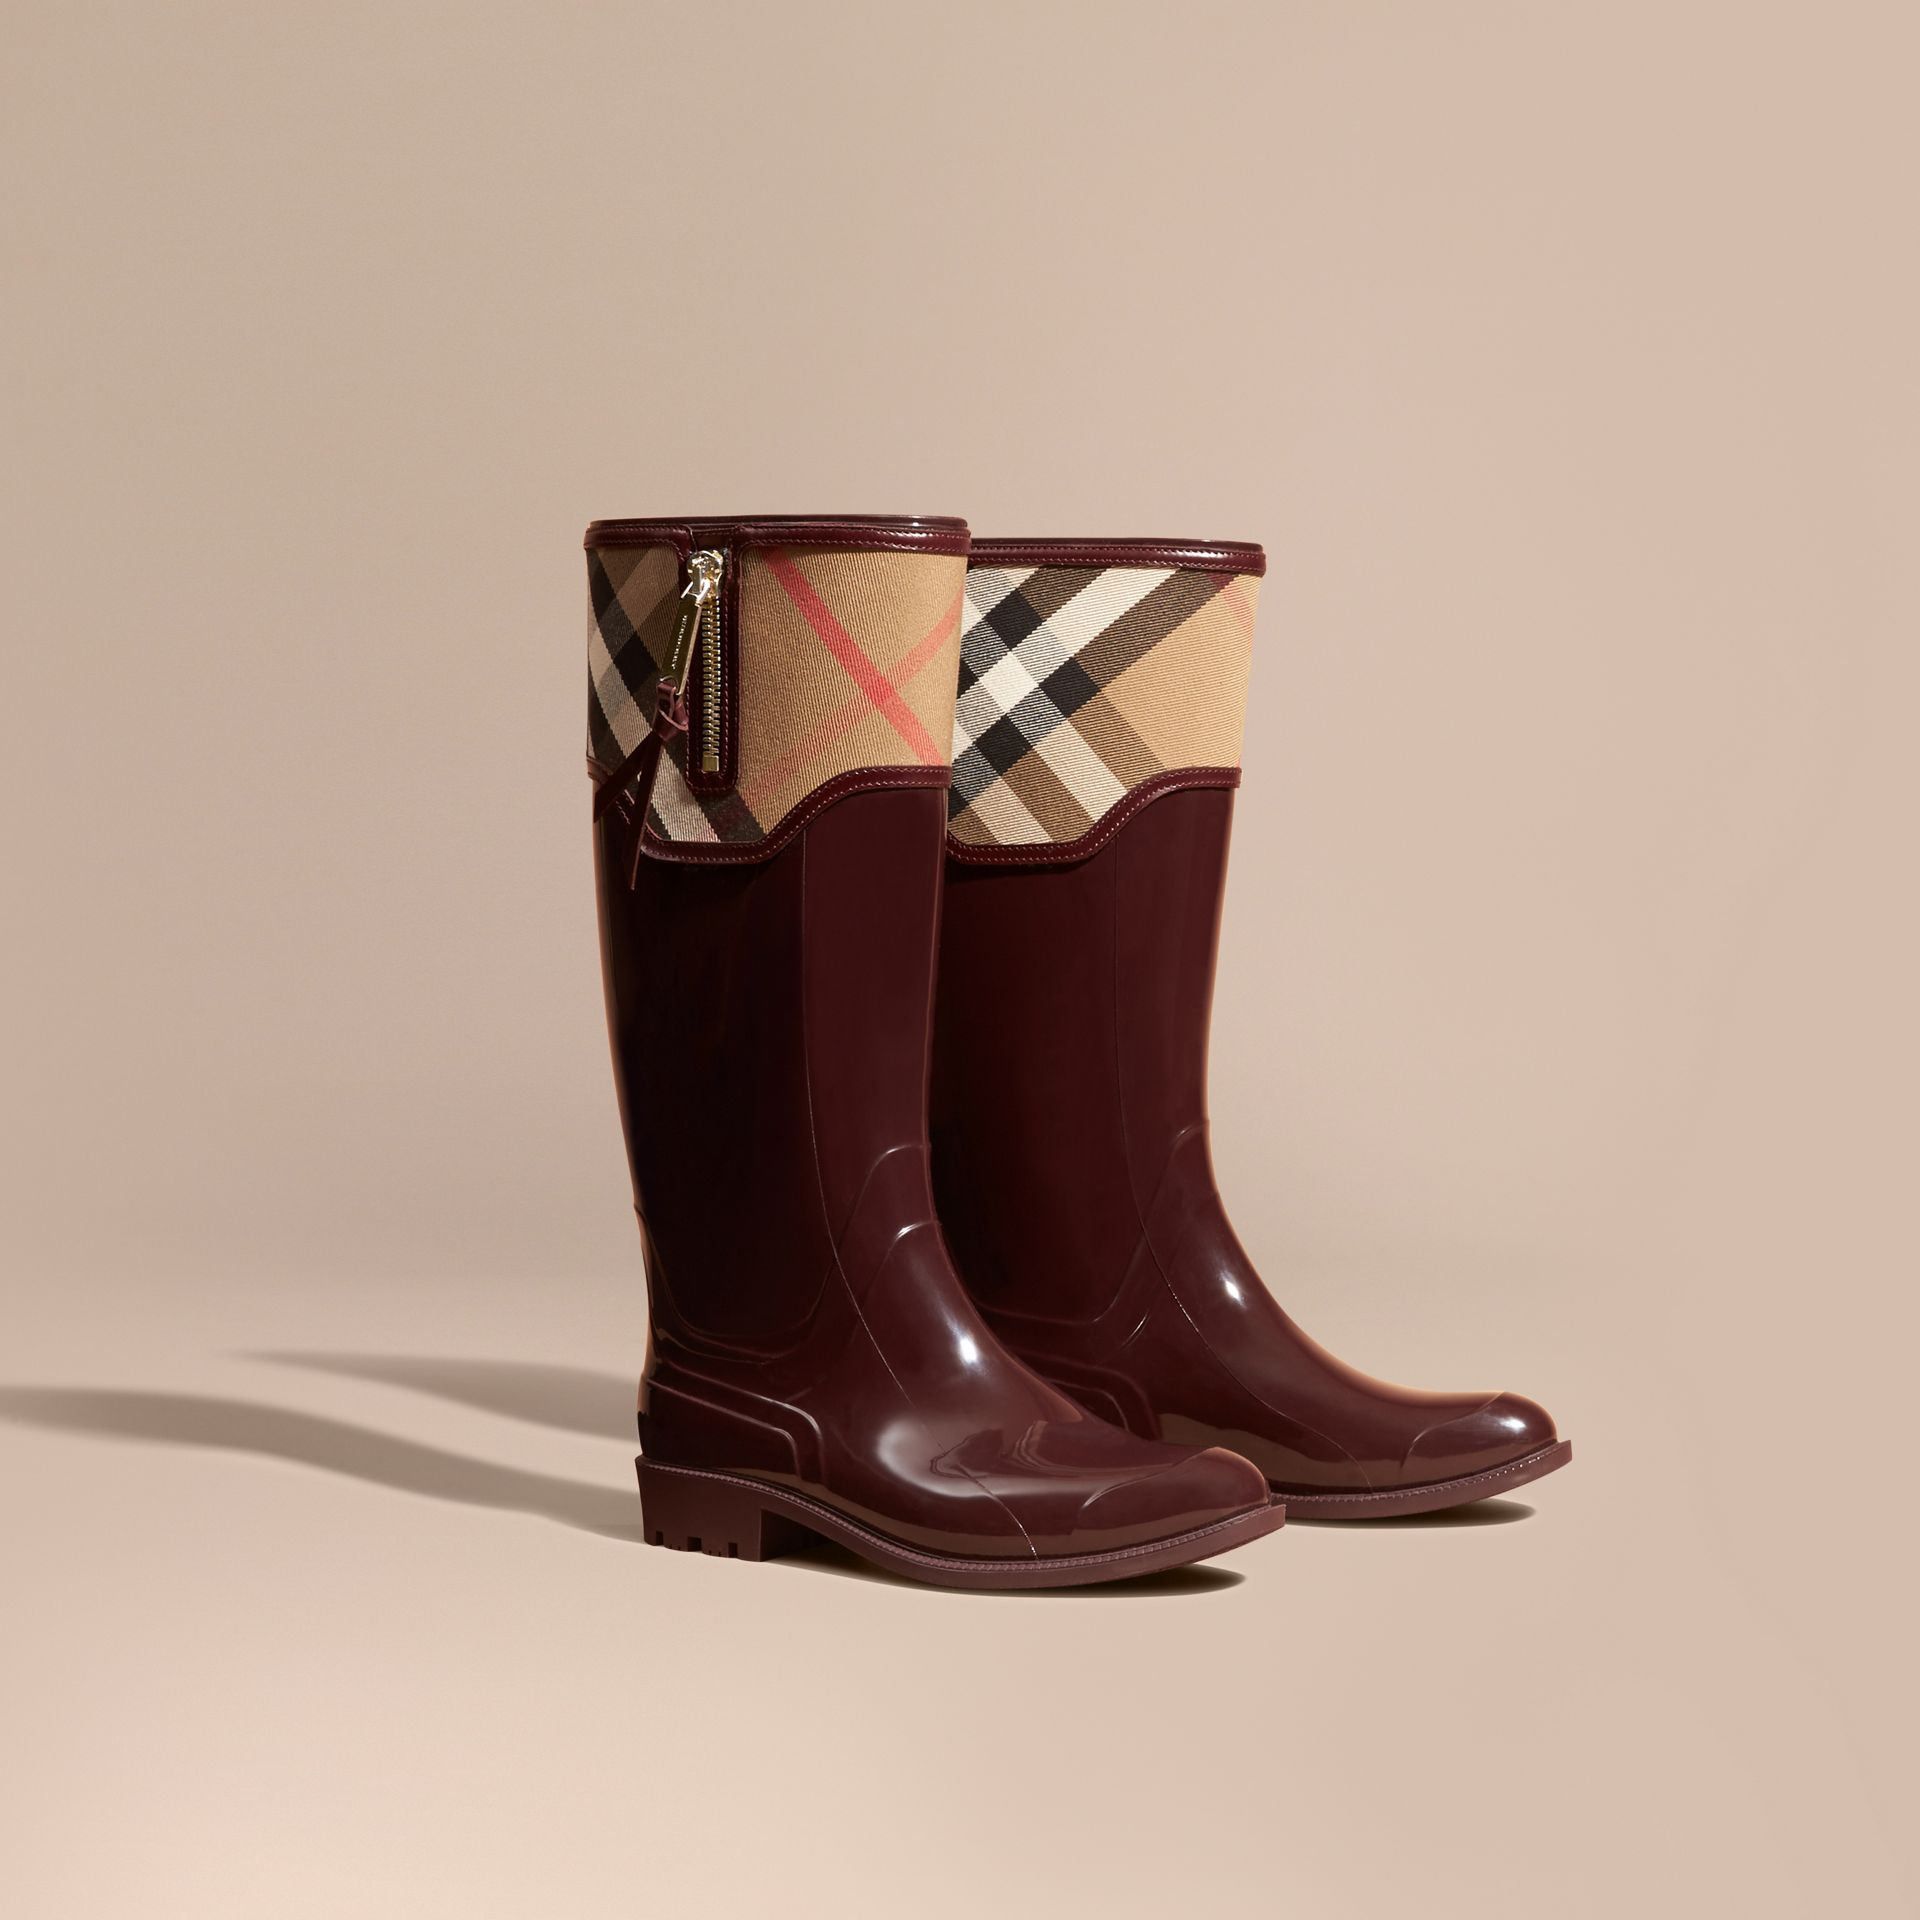 Oxblood Leather and House Check Rain Boots - gallery image 1